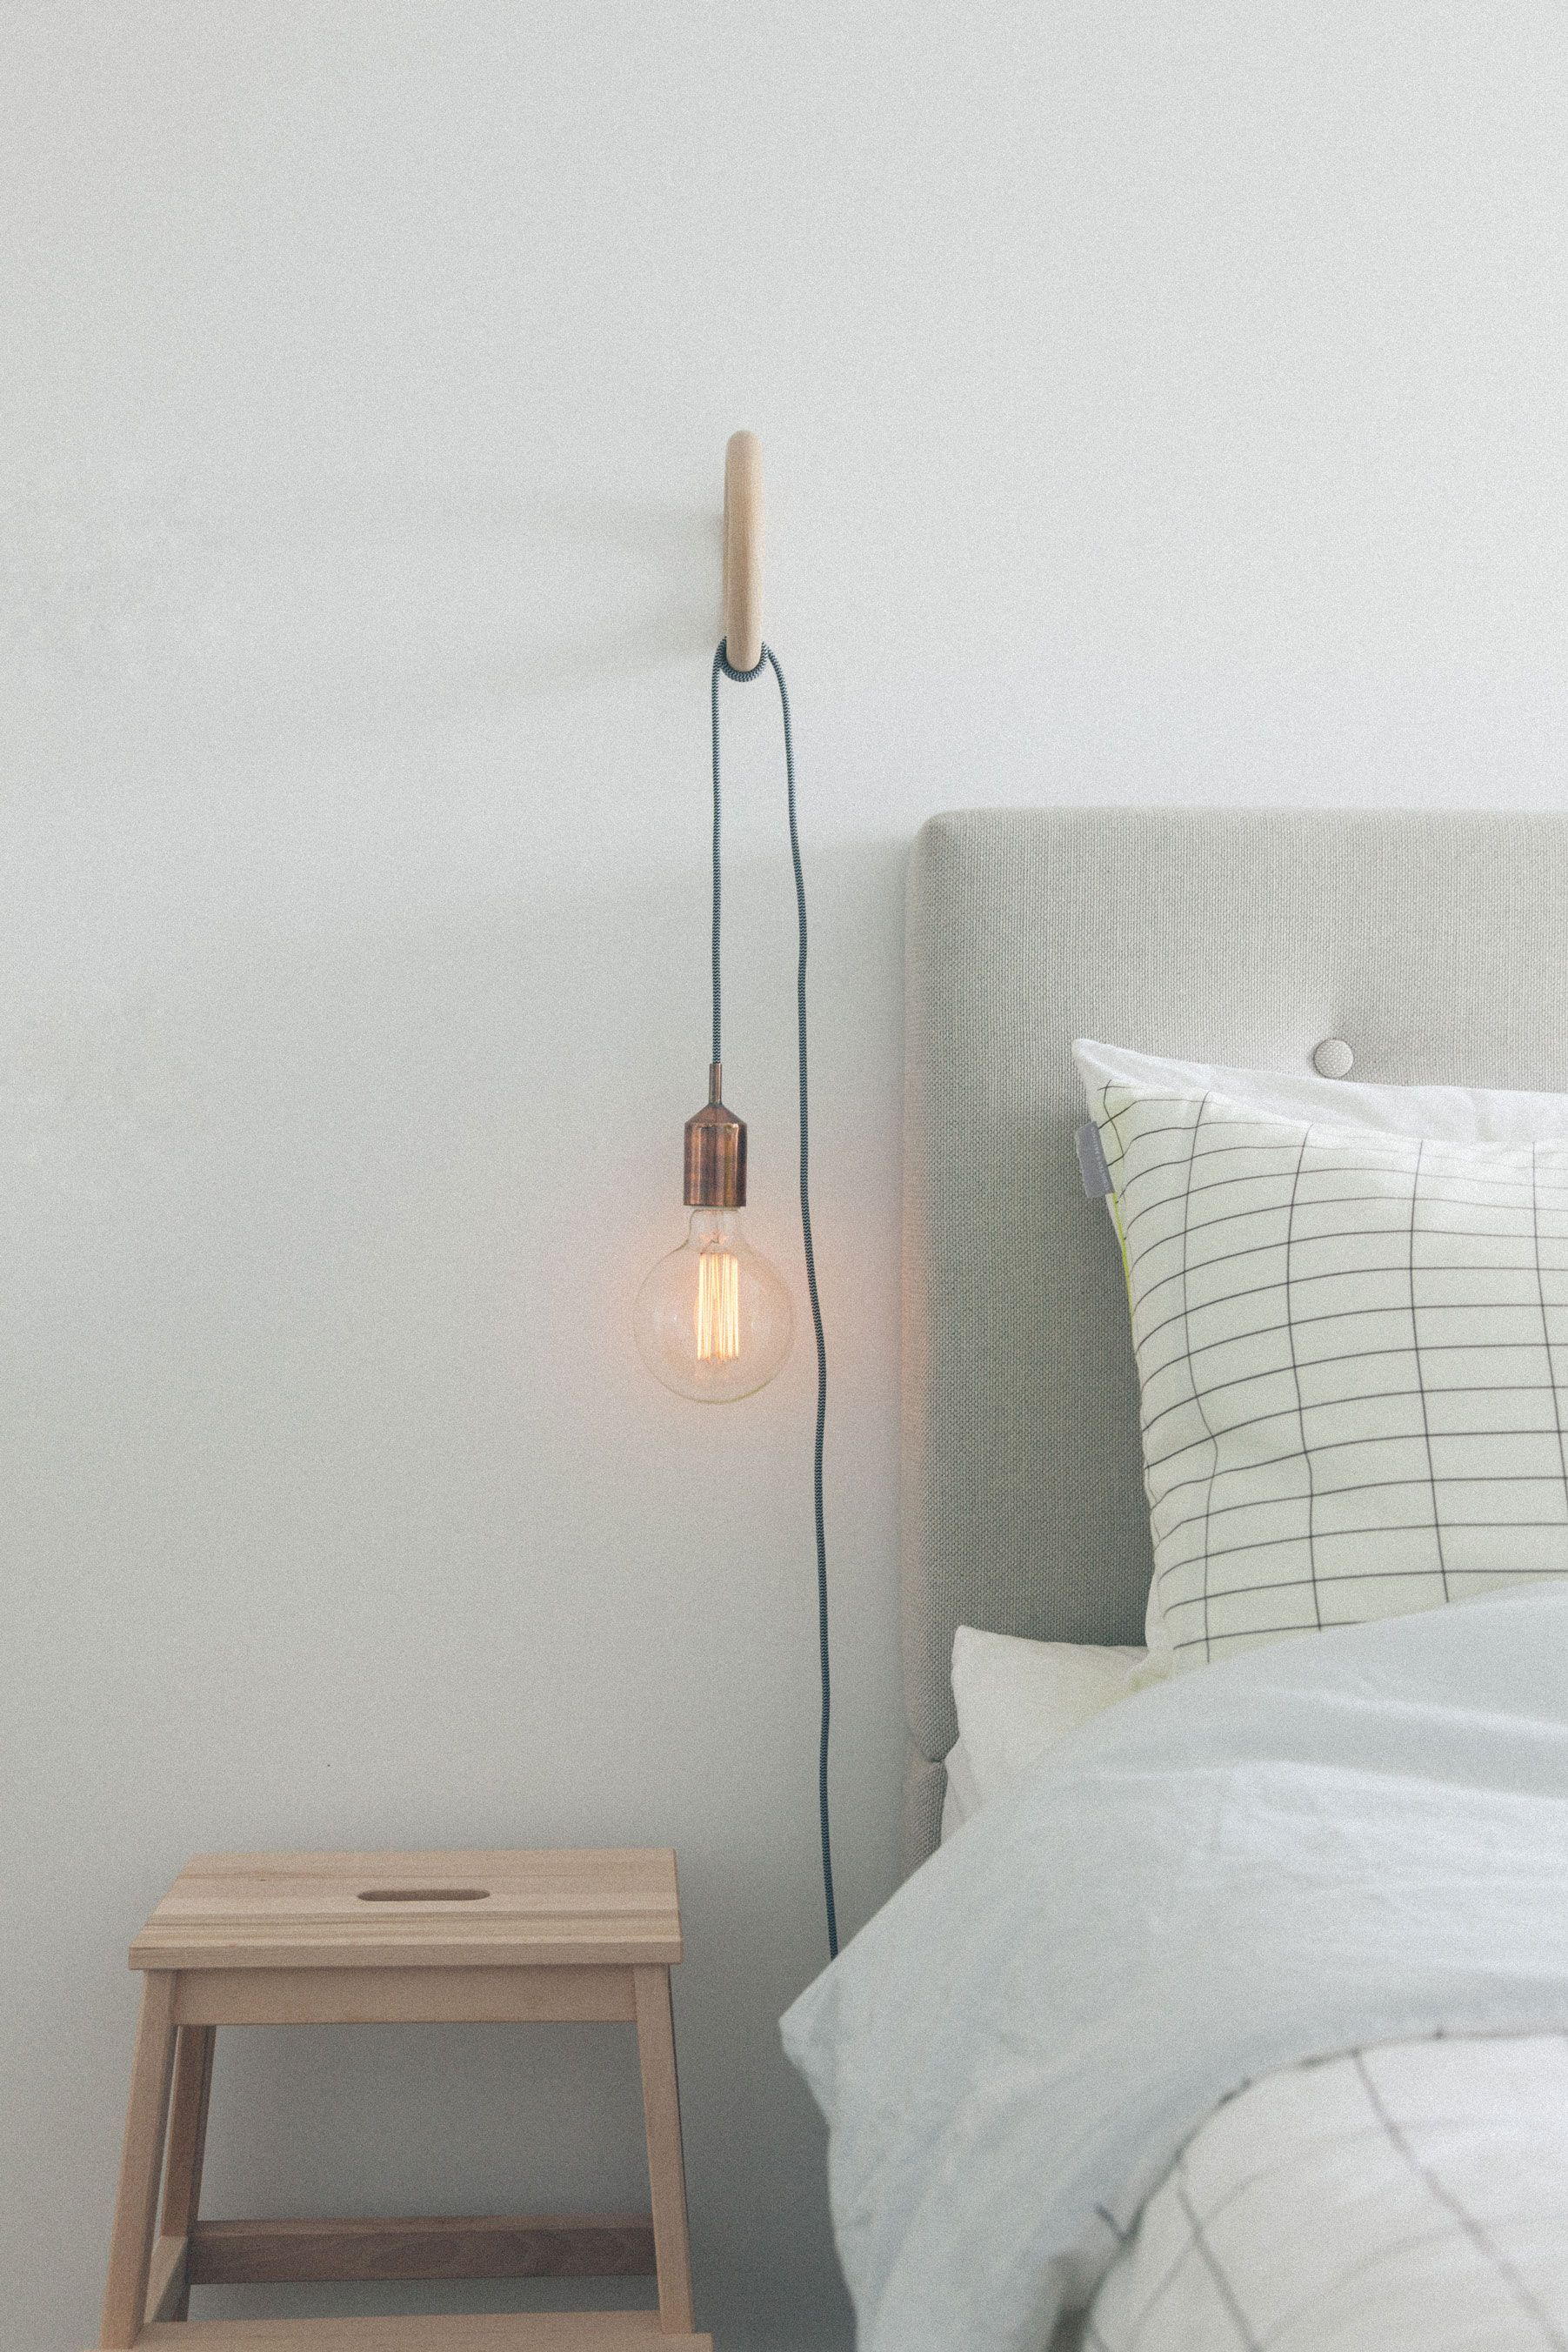 Cool Hanging Lights For Bedroom Favorite Things Friday Beachy Farmhouse Tour Remodel Ideas